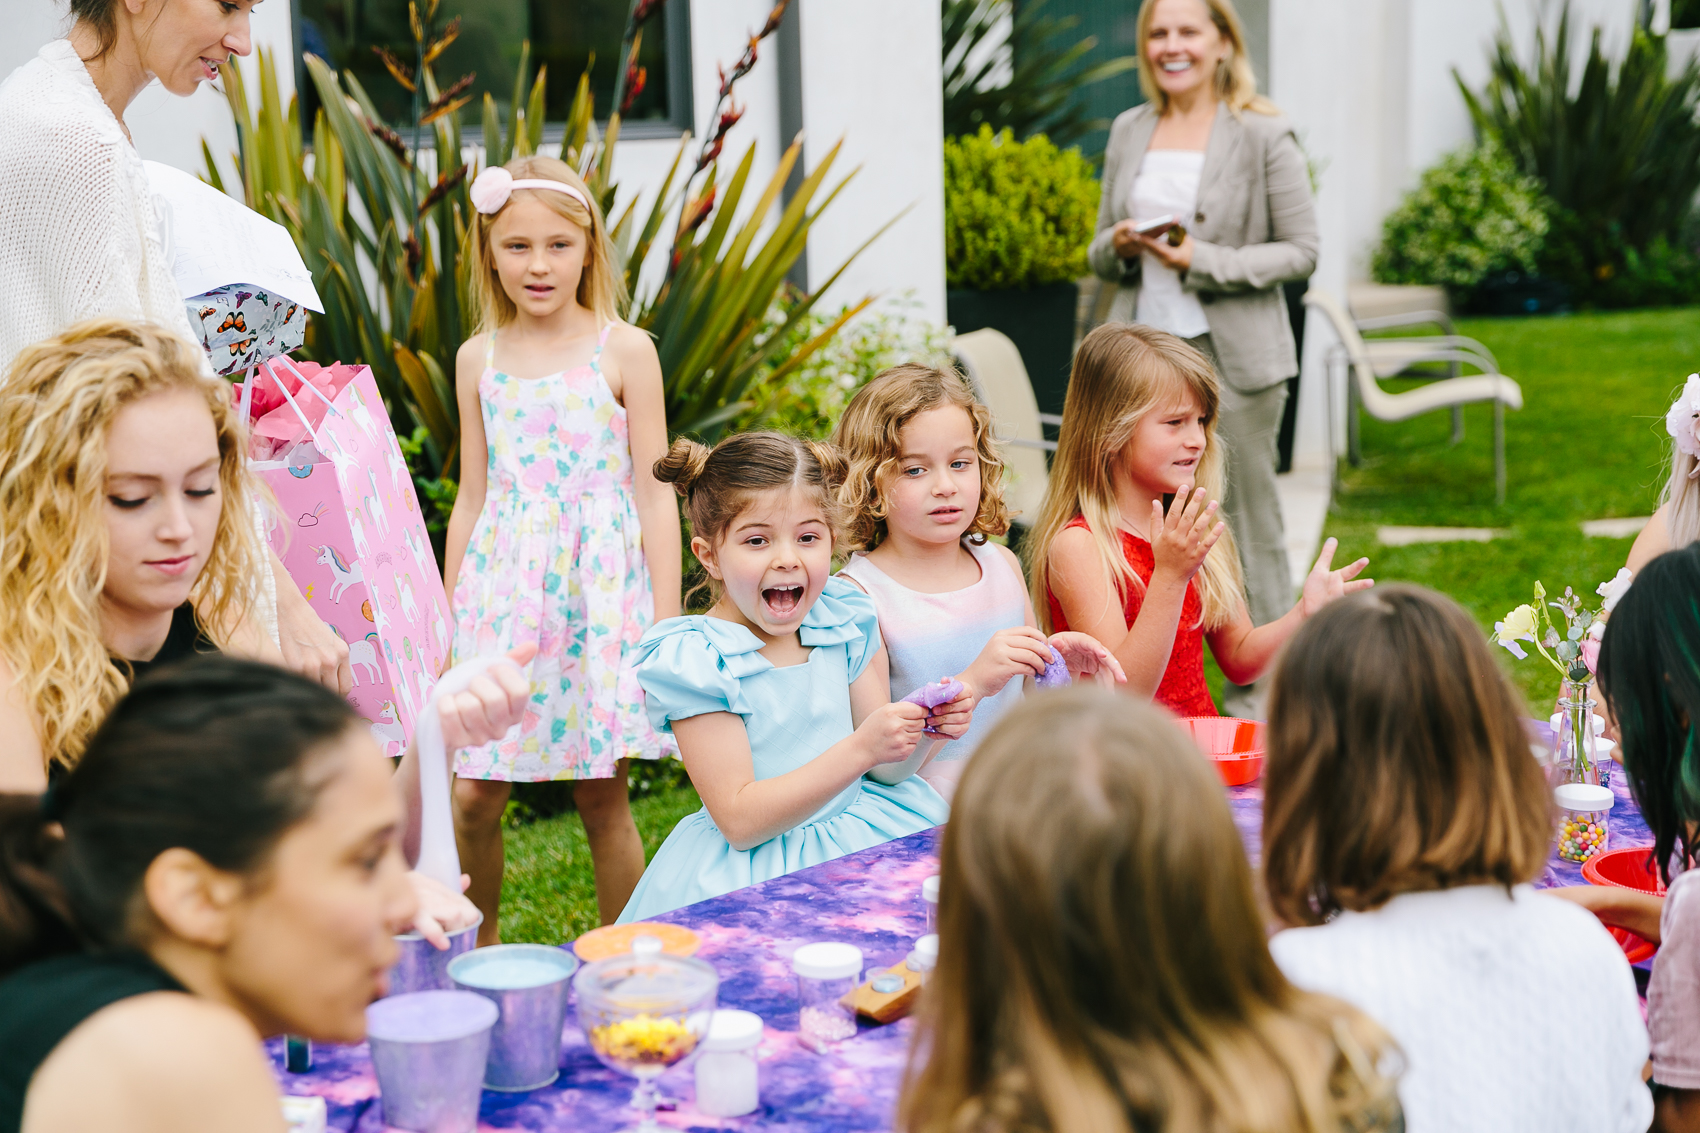 Los_Angeles_Family_Photographer_Luxury_Childrens_Party_Beverly_Hills_Unicorn_Birthday_Party-0766.jpg